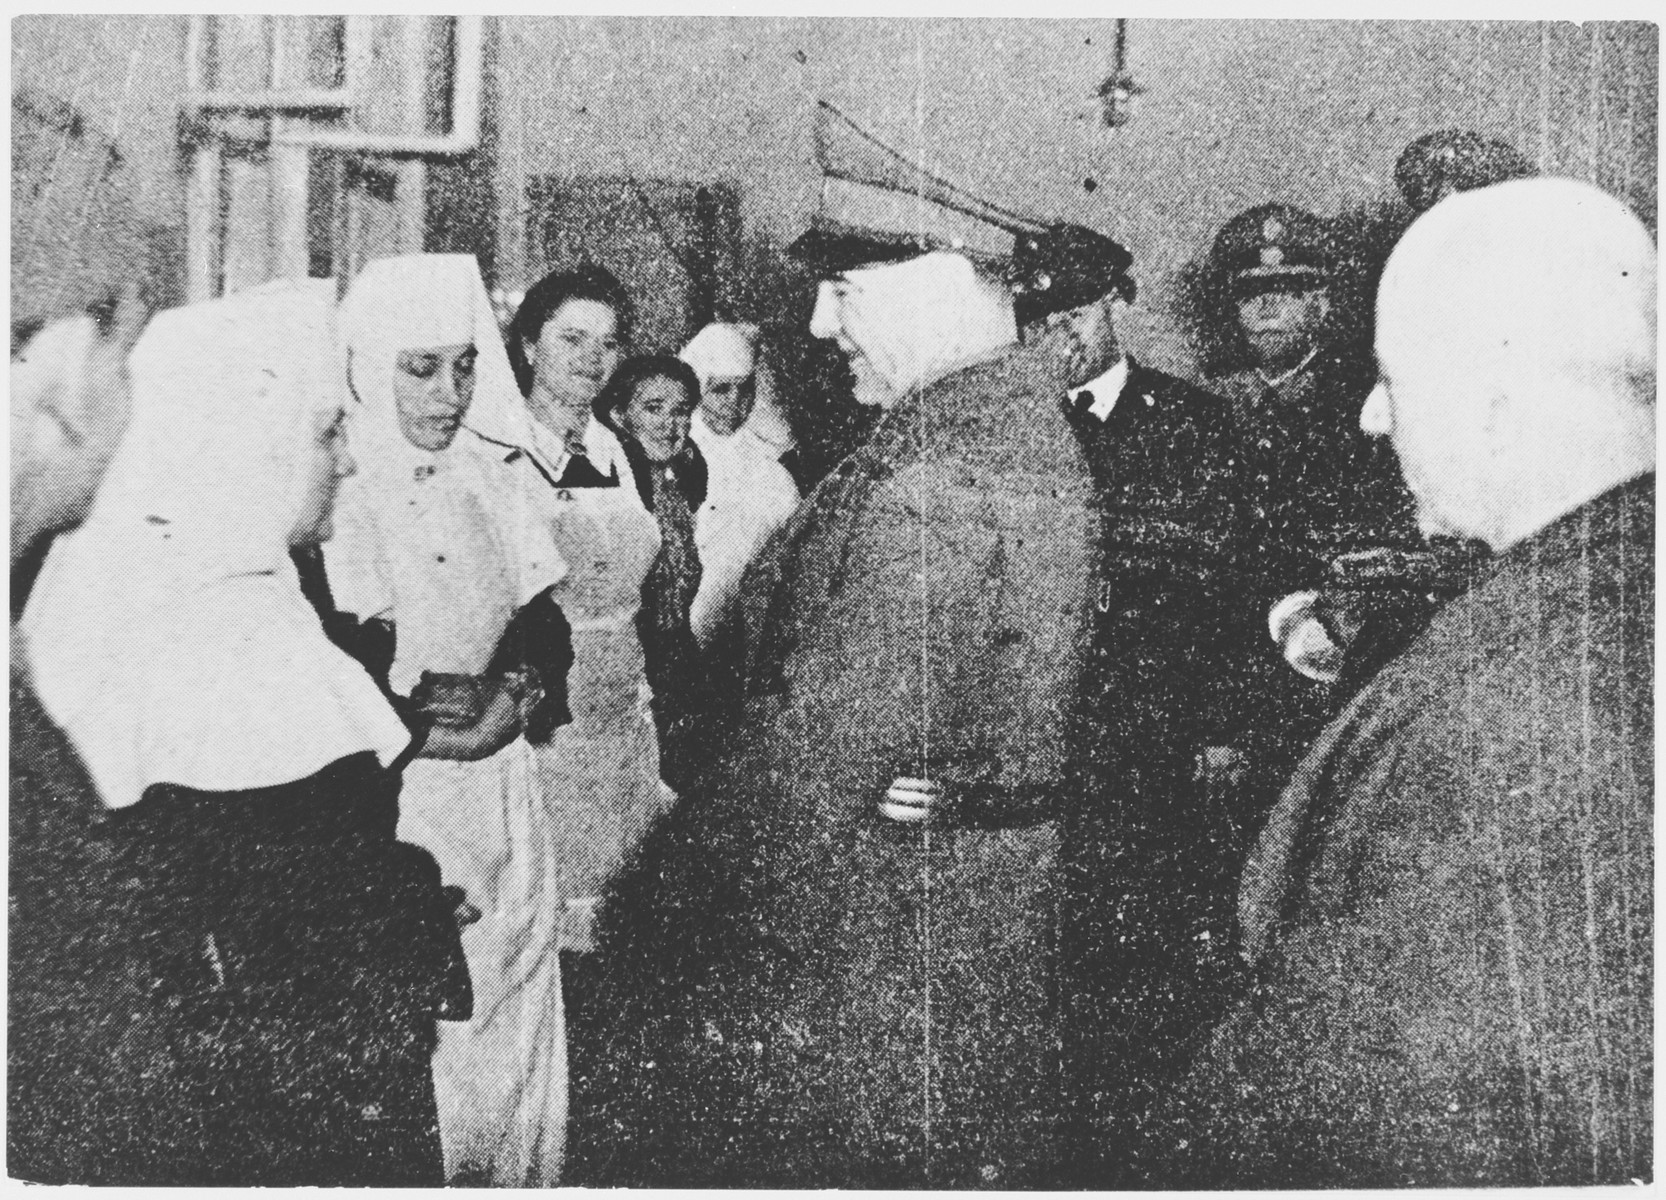 Croatian leader Ante Pavelic and Field Marshal Slavko Kvaternik talk to a group of nuns at an unidentified camp or institution.